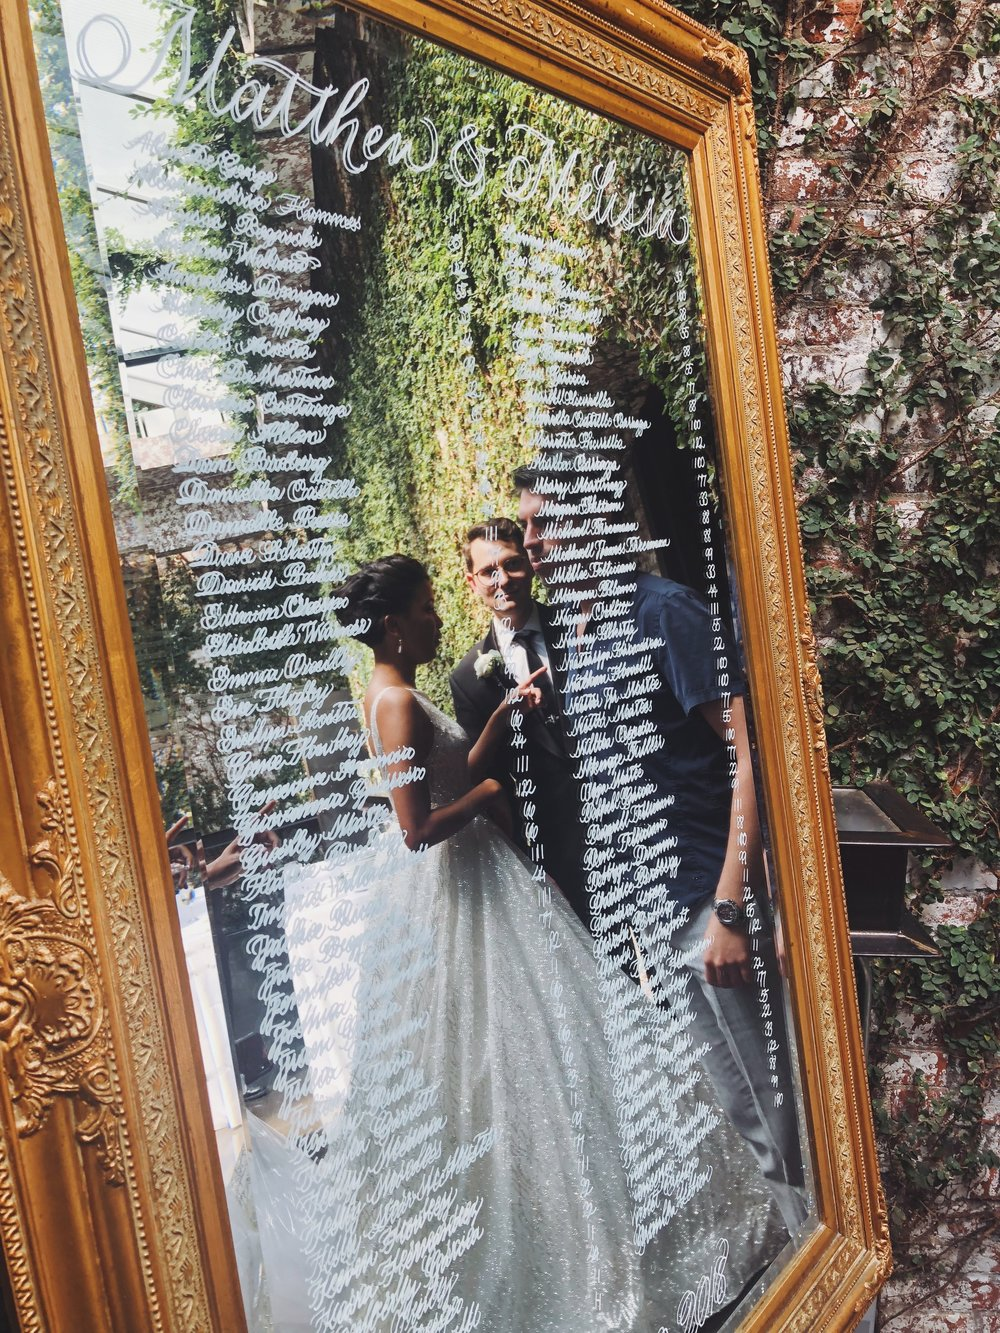 Wedding seating chart mirror with calligraphy | by www.chavelli.com